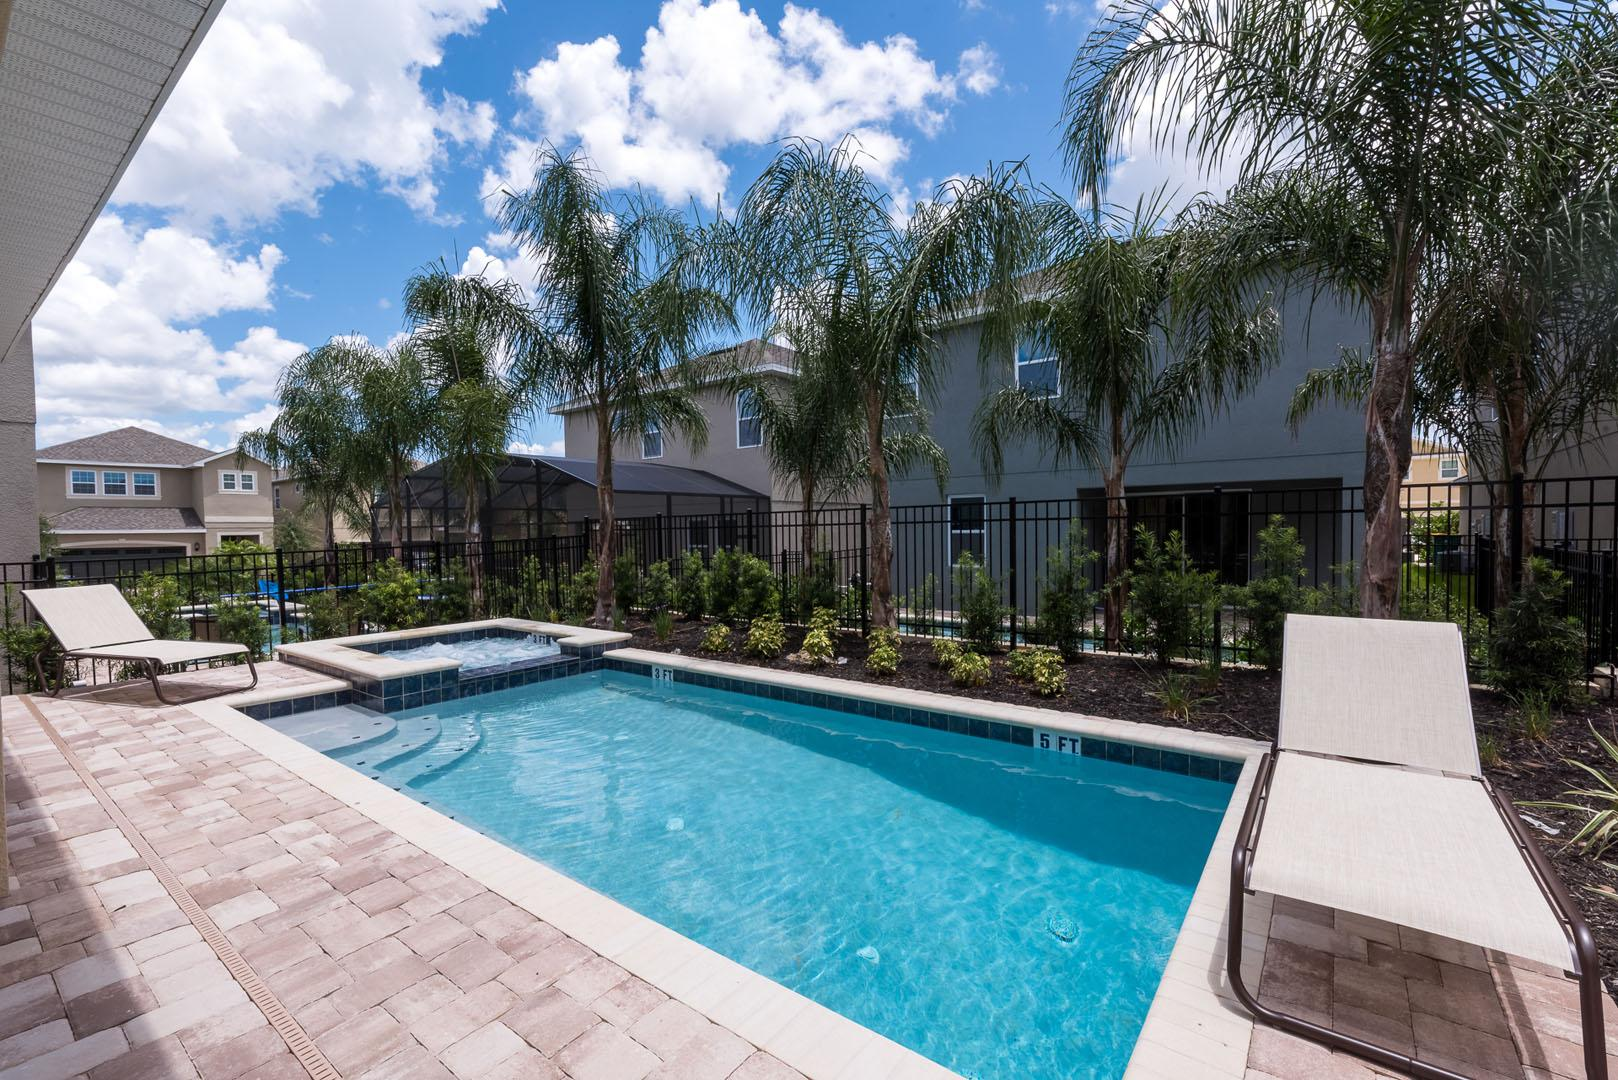 Property Image 2 - Spacious Home with Water Park Access near Disney